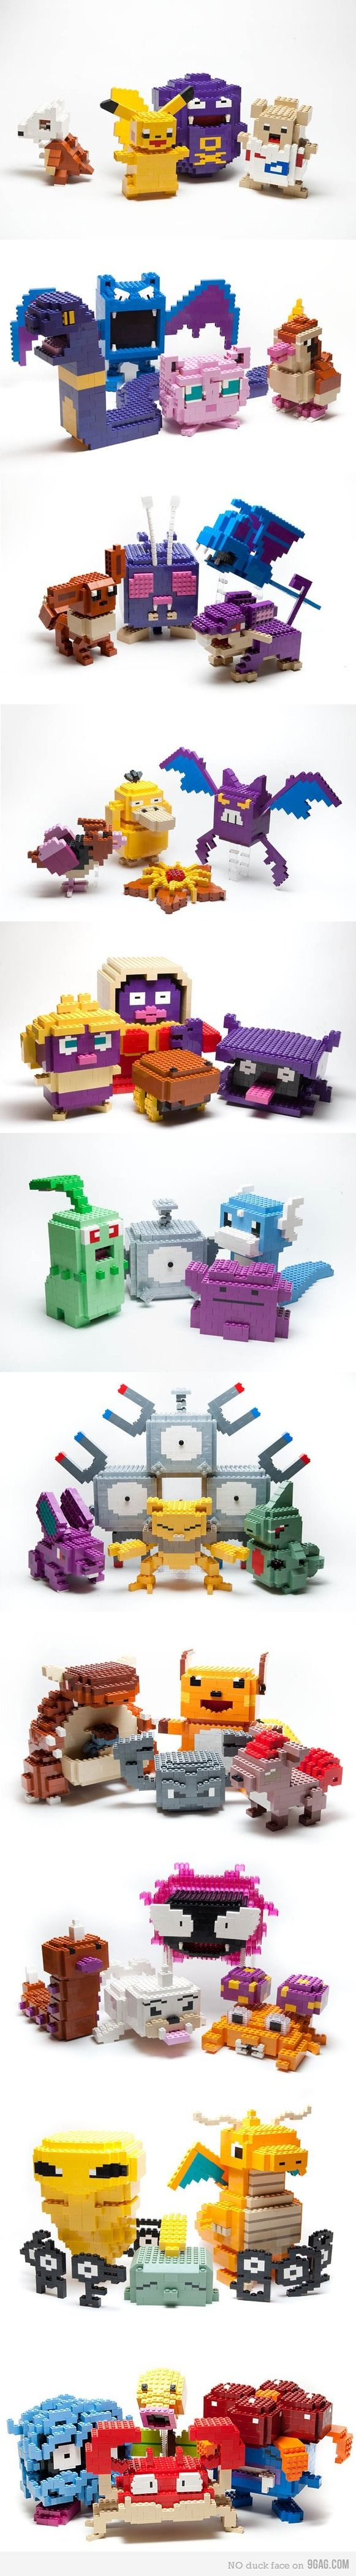 Pokemon Lego Sculptures! My boys would love this. All 3 of them!  LOL